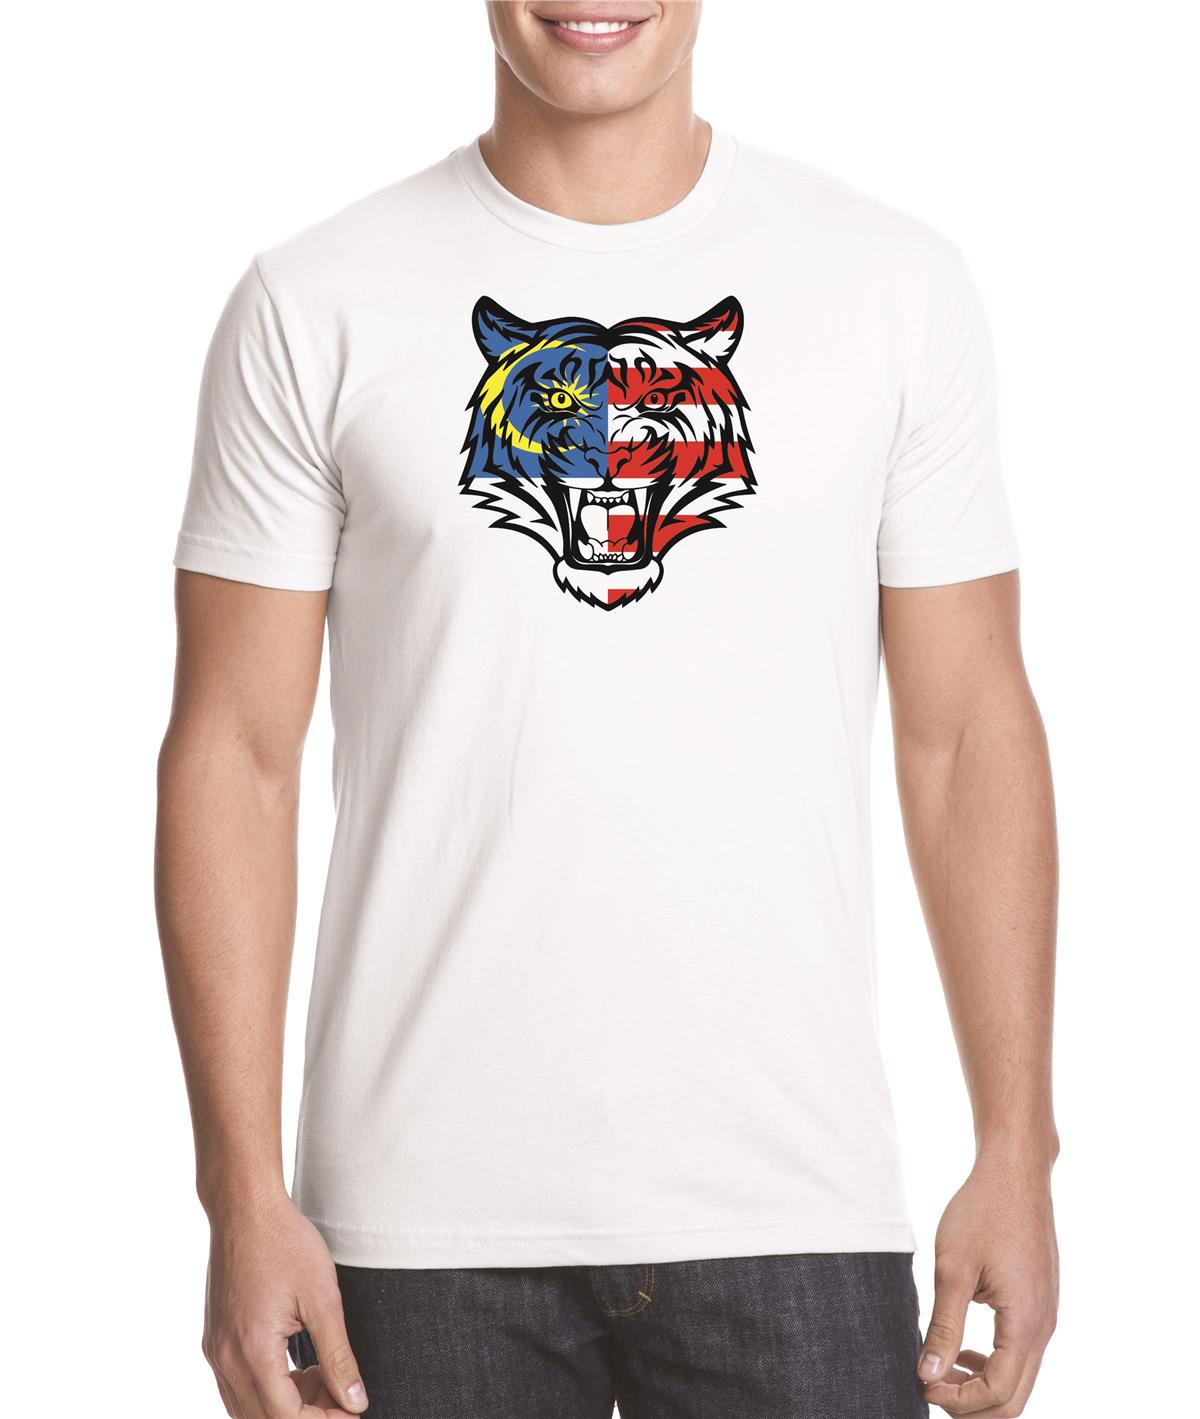 Cool T Shirt Design With Malaysia Fl End 12 1 2017 8 15 Pm